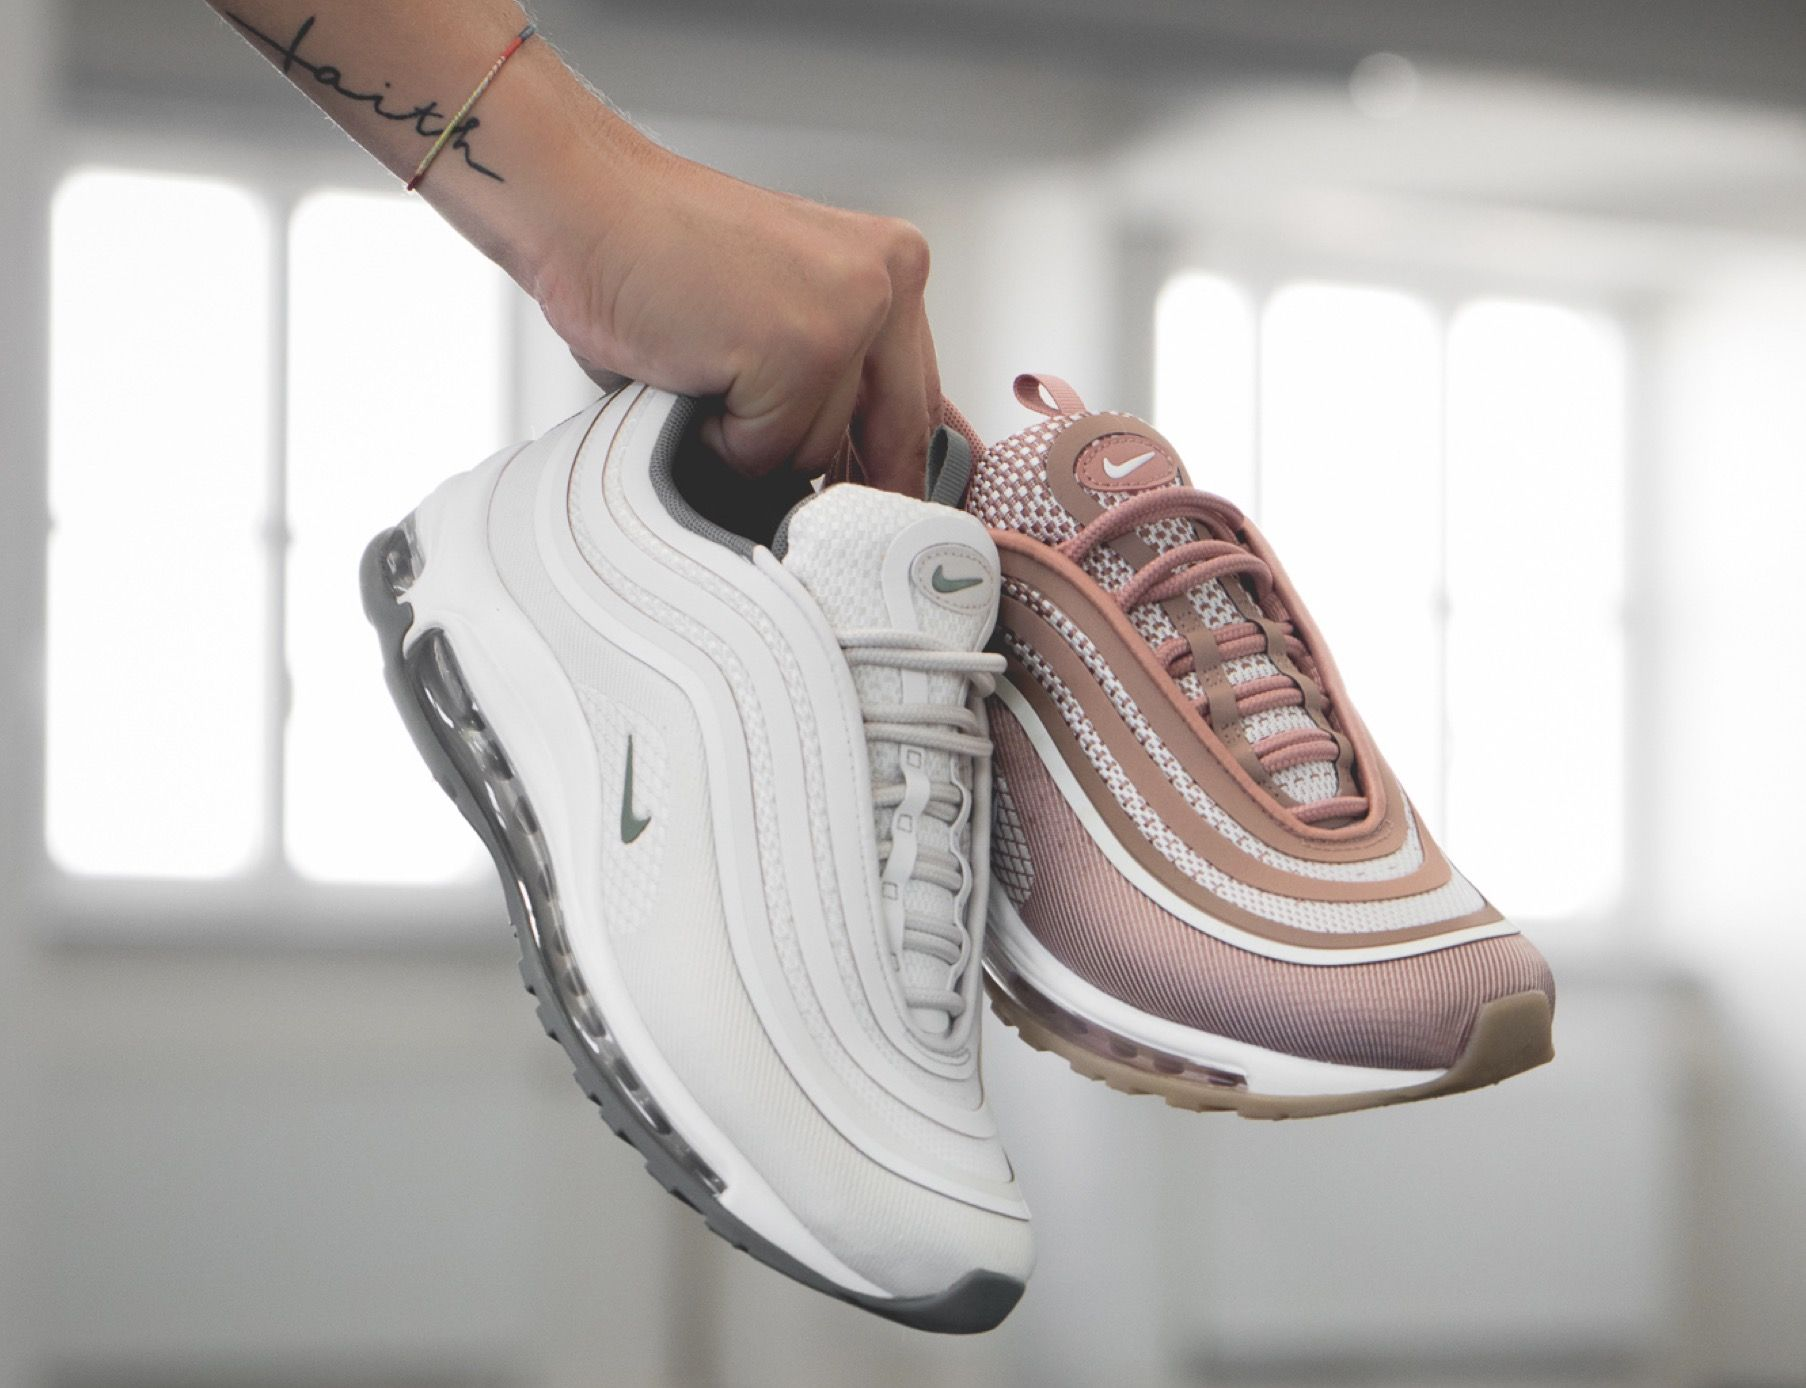 Cheap Nike Air Max 97 Premium (312834 004)